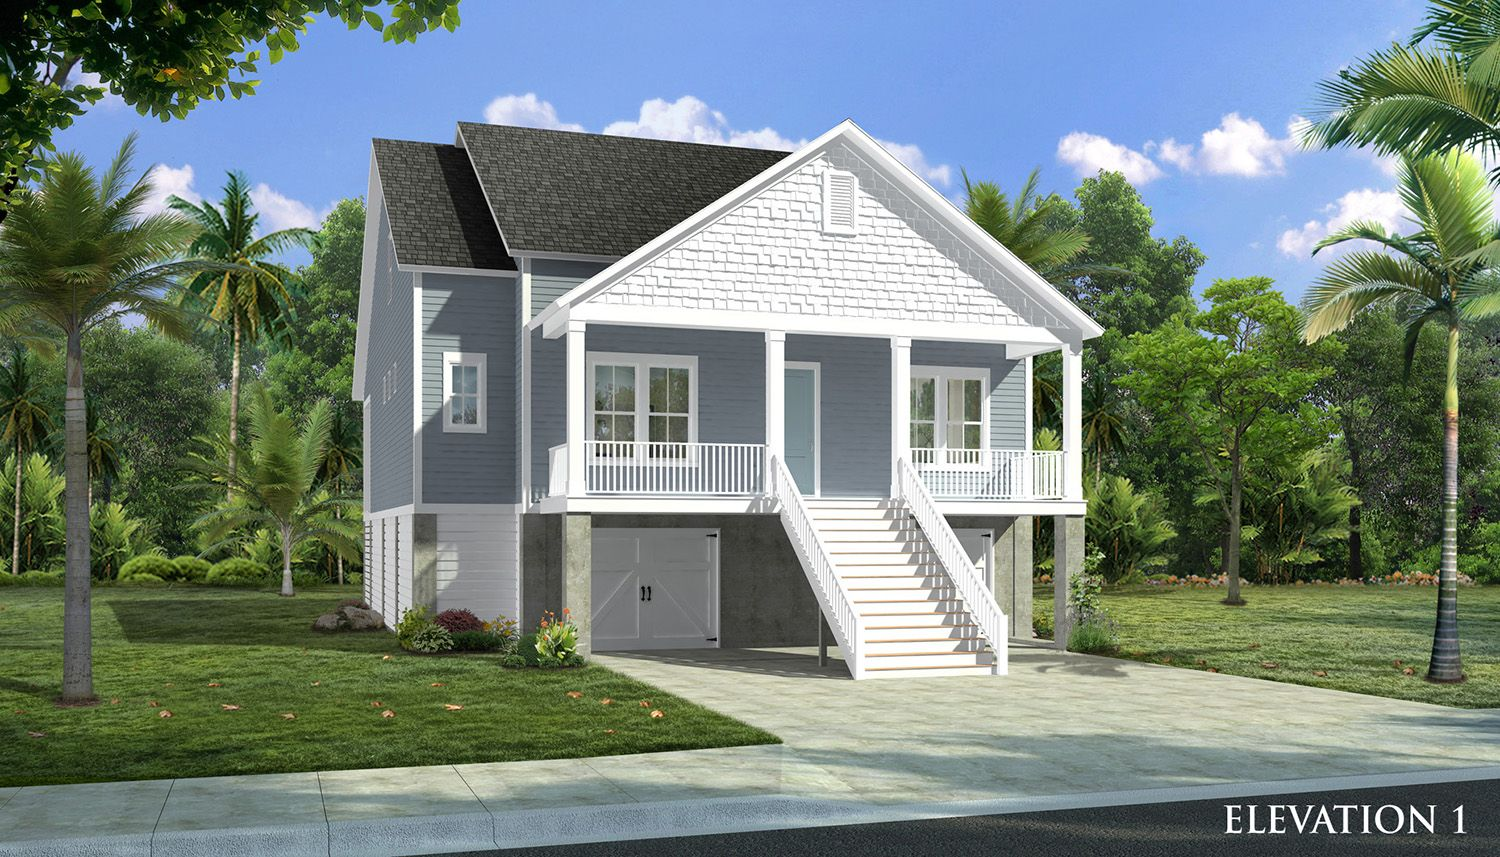 Elevation 01 -Elevated Home:Preakness II Elevated - Water Front Homesite